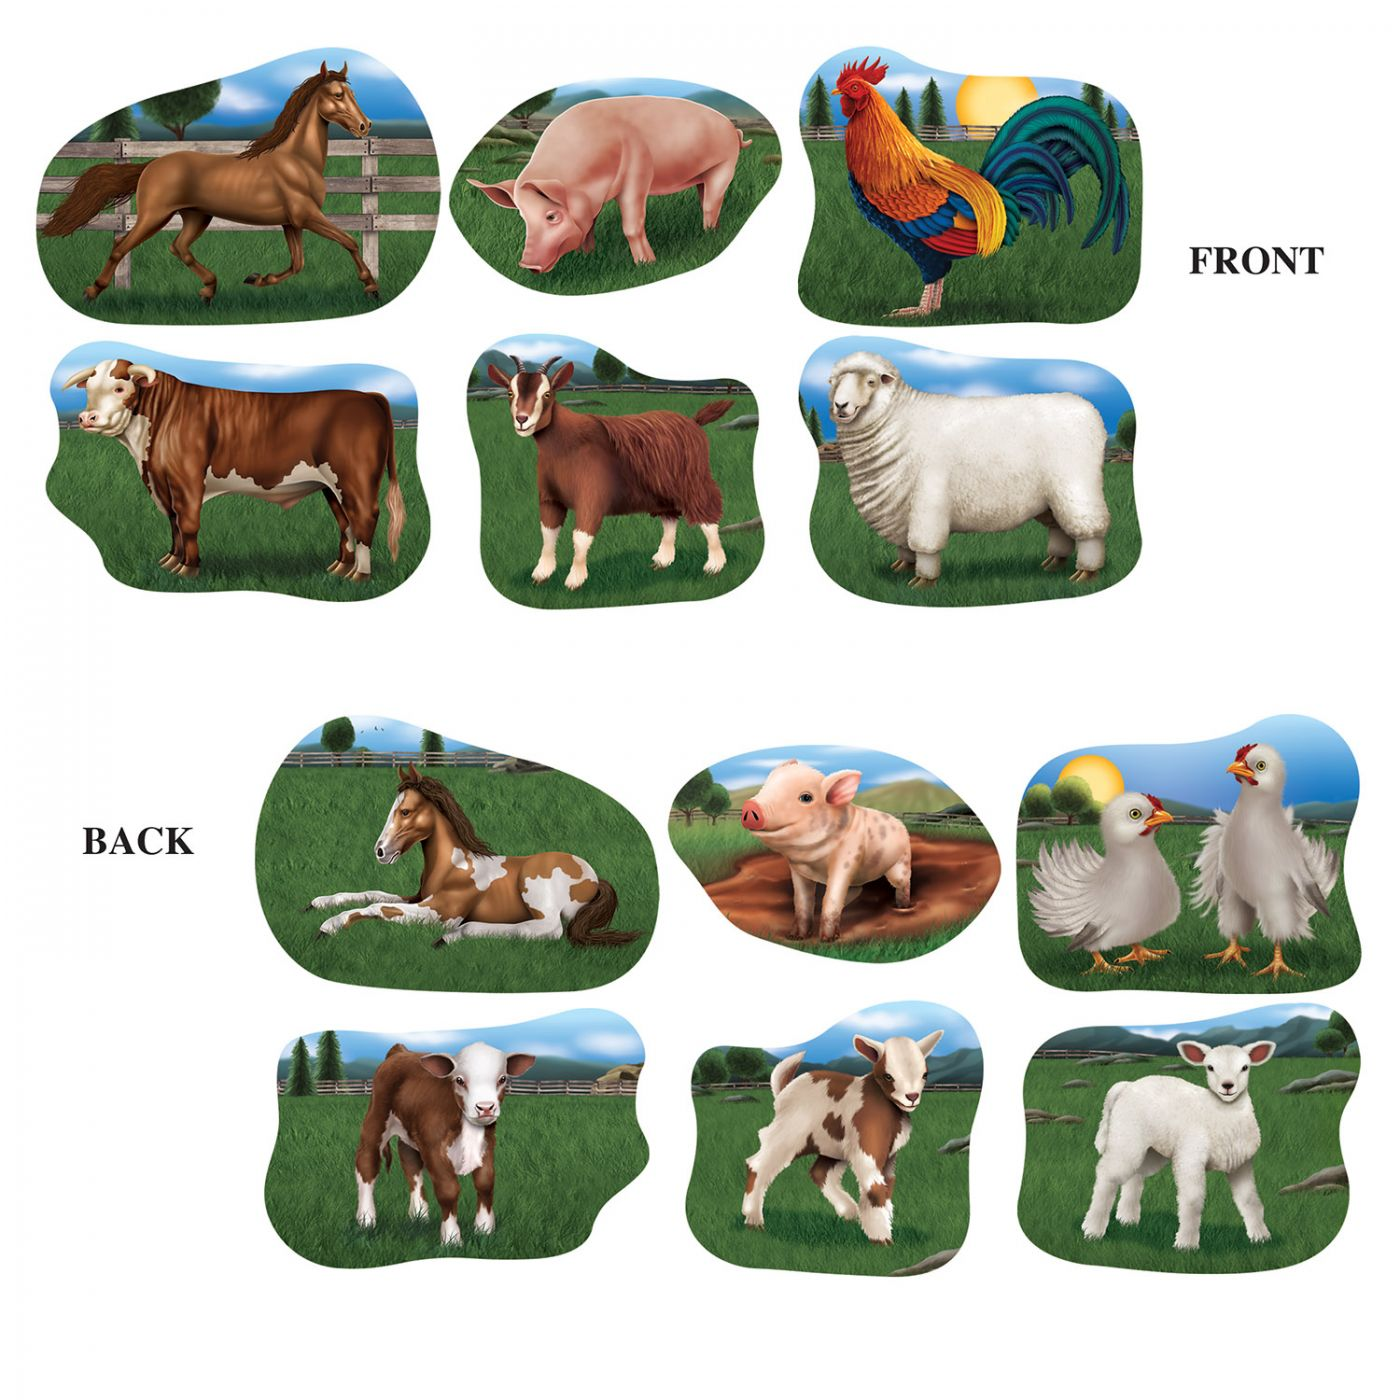 Farm Animal Cutouts image